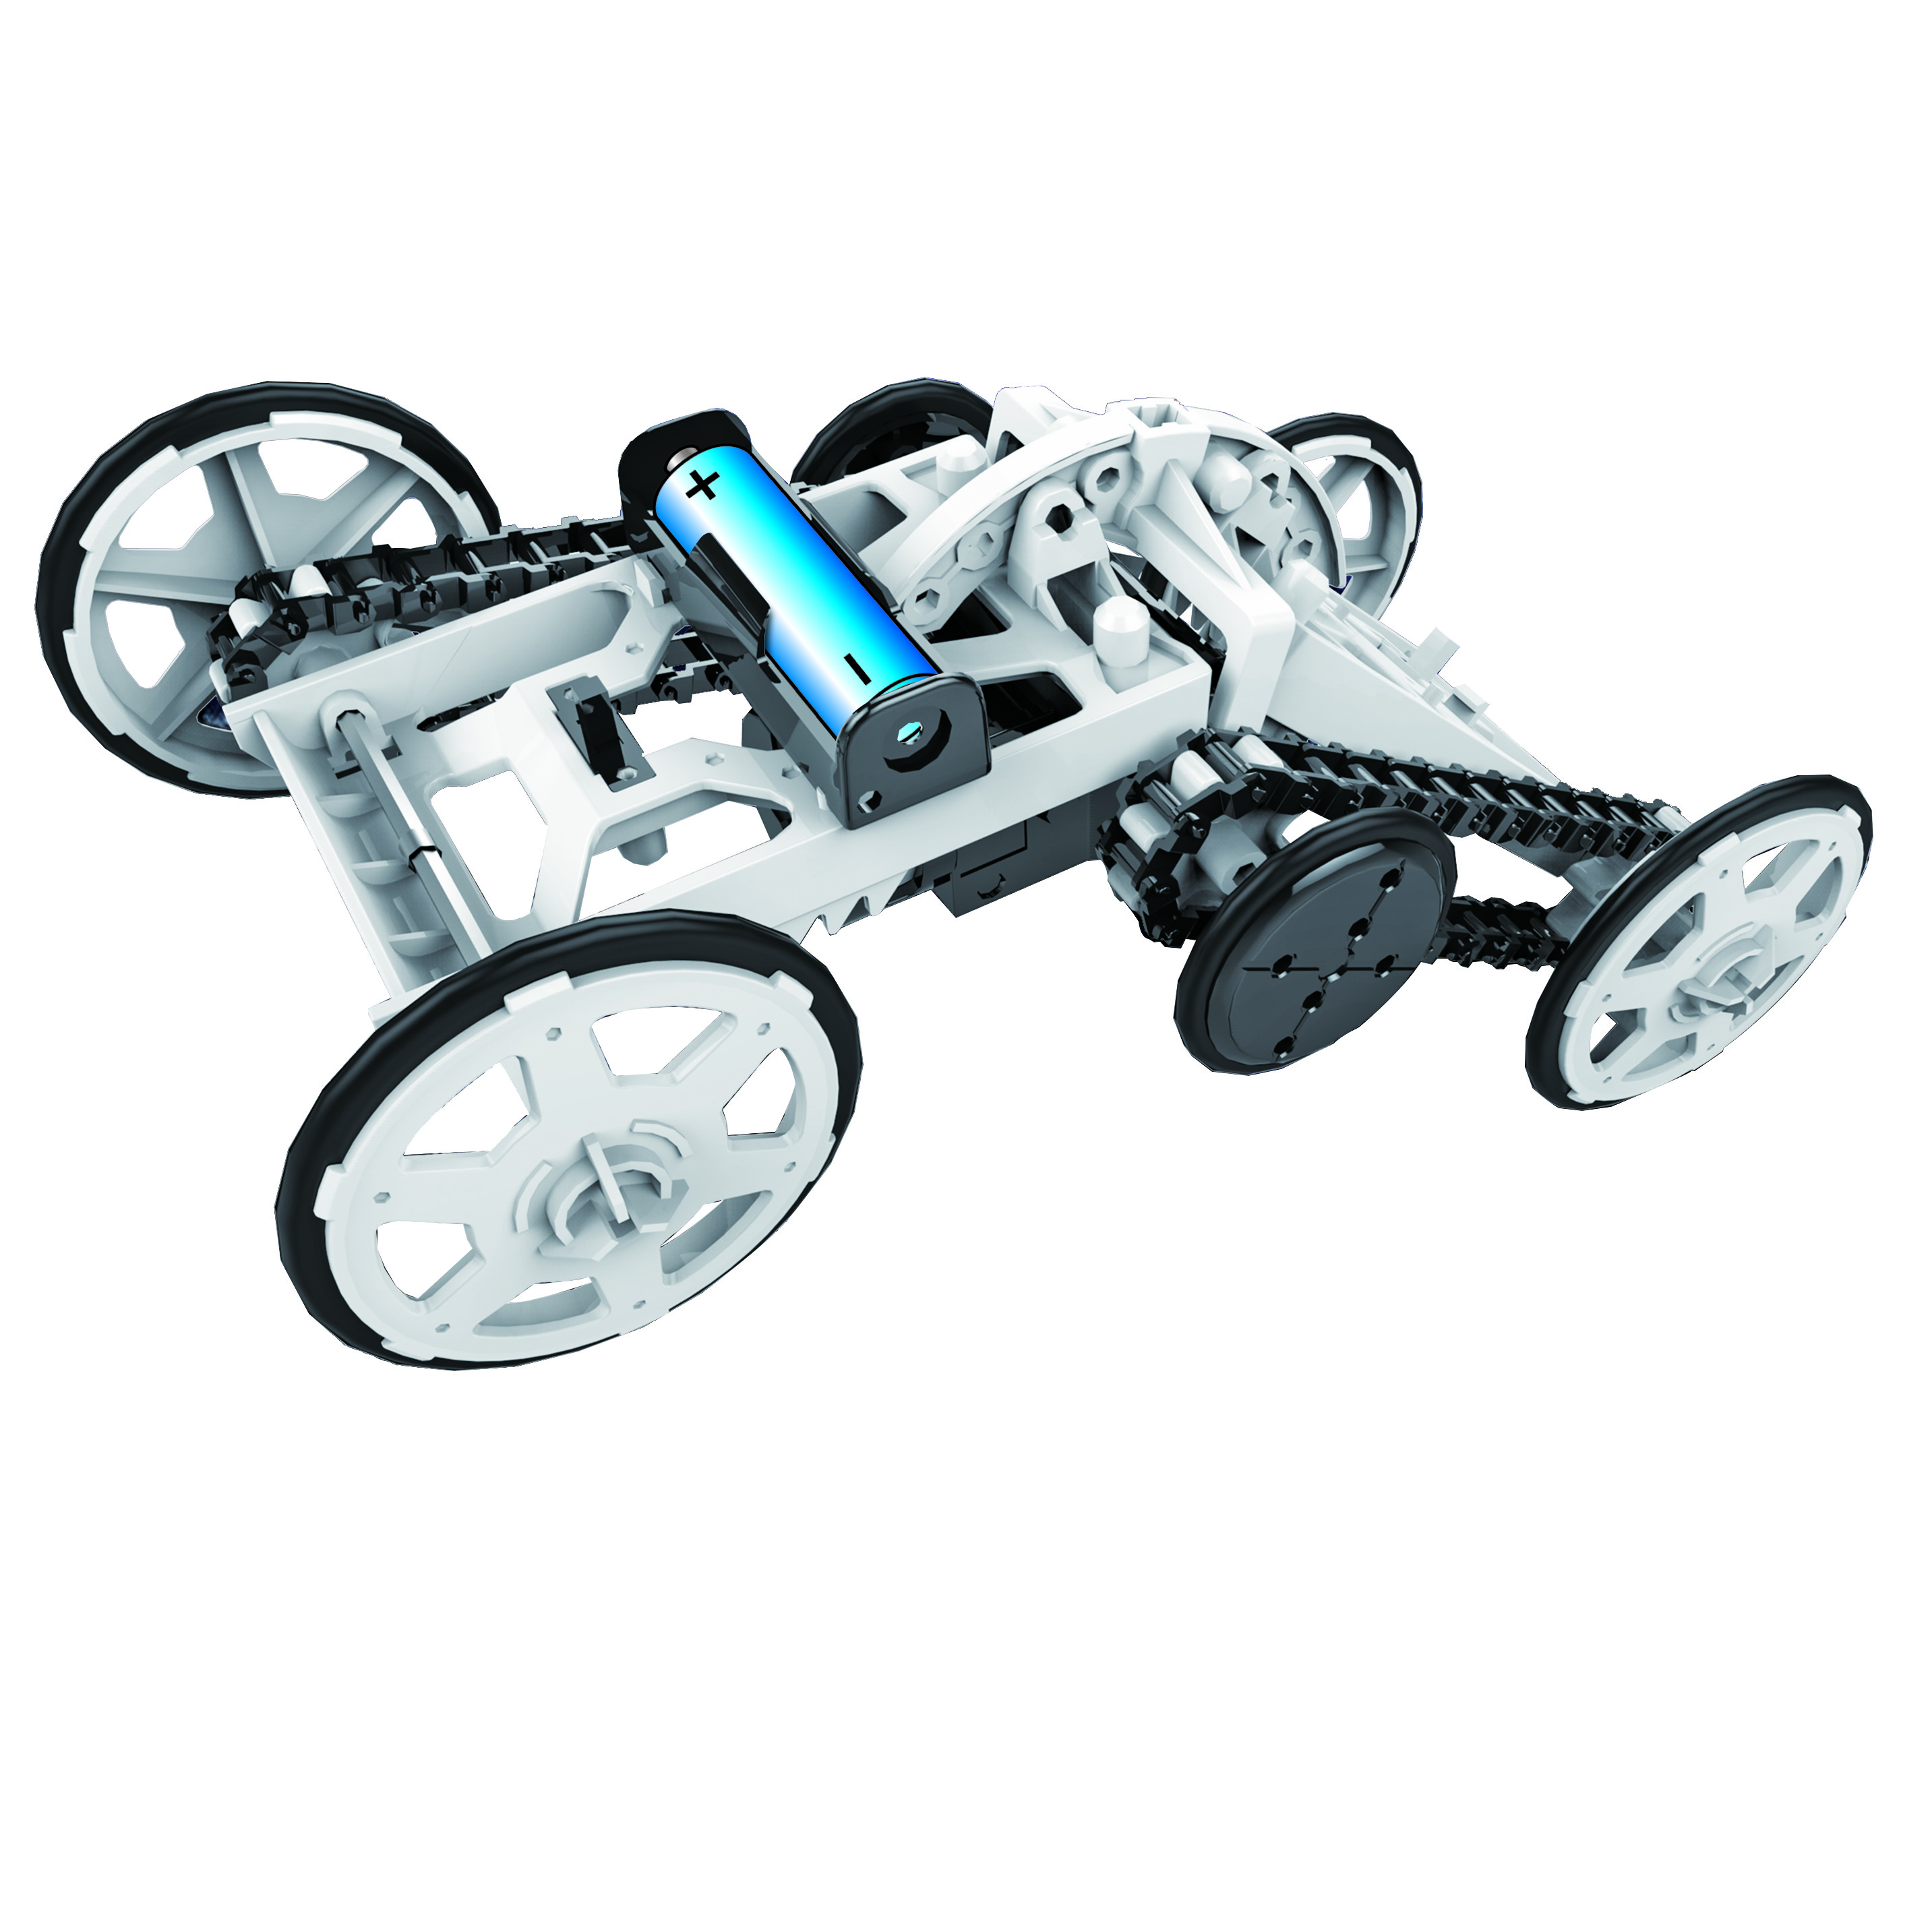 2019 Educational Learning Engineering Mechanical Assembly Diy 4Wd Climber Science Kit Stem <strong>Toys</strong> For Kids